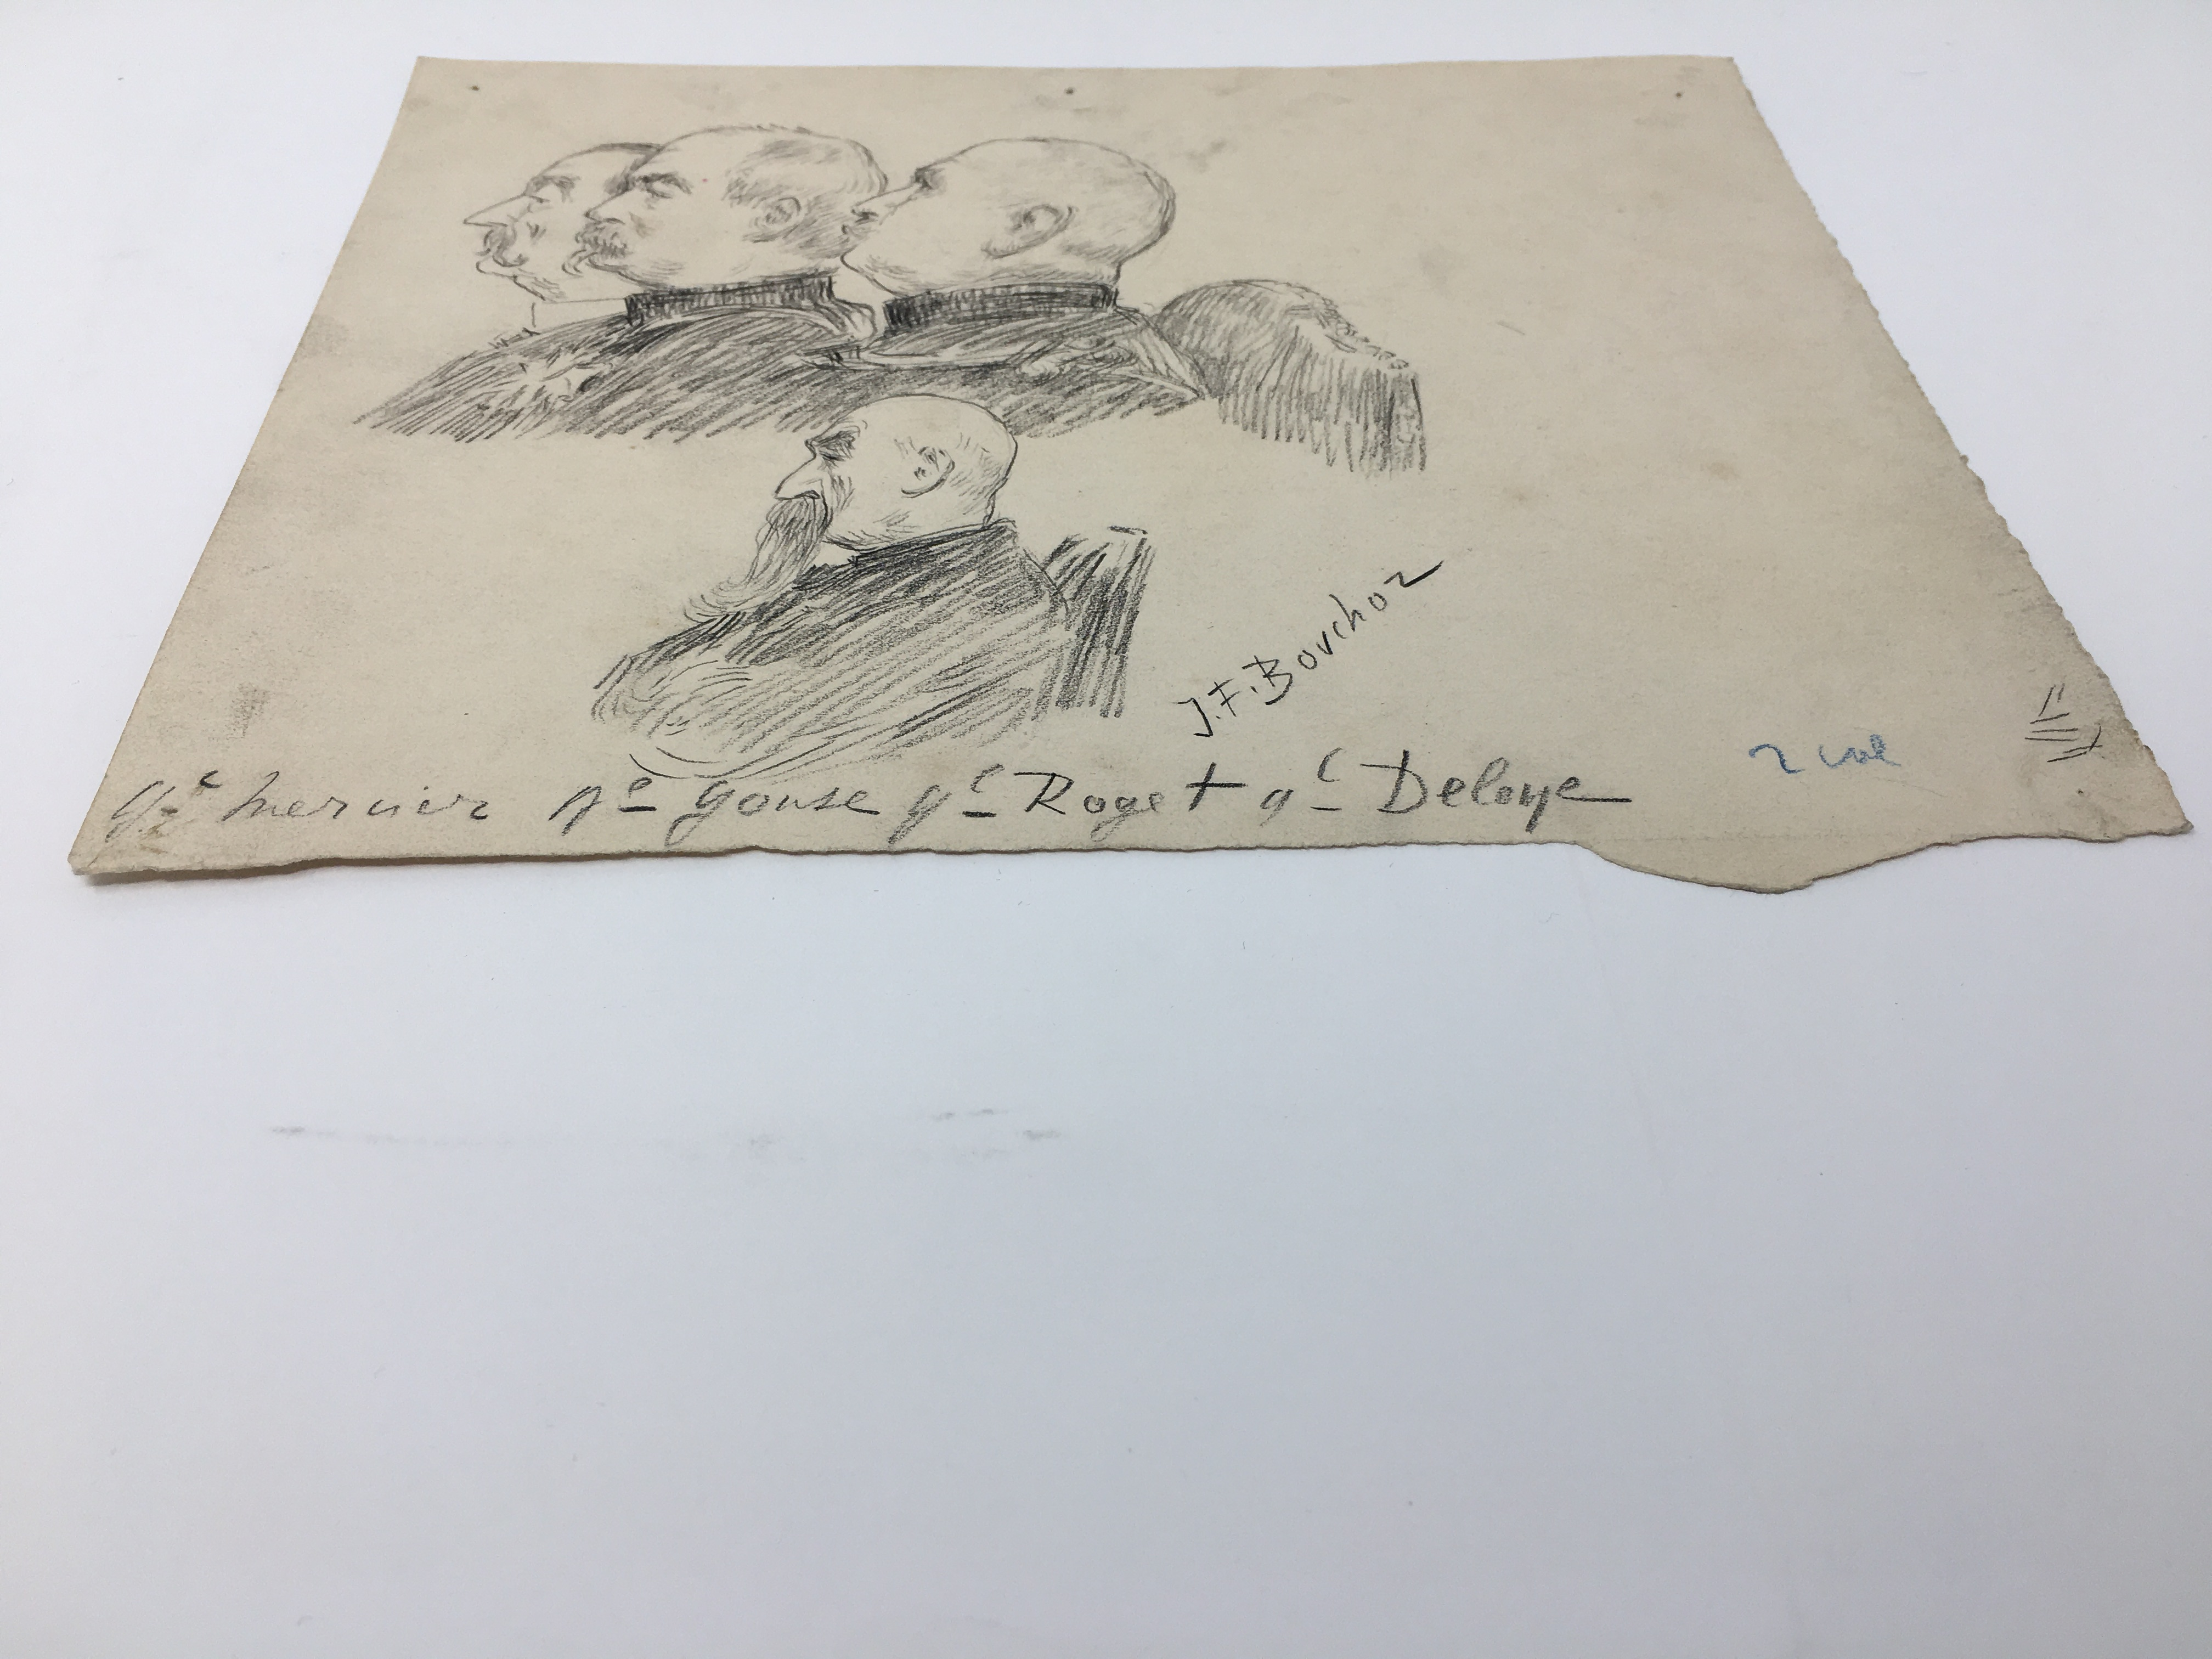 J'Accuse Newspaper, Emile Zola Quote, Signed Dreyfus Portrait, Rare Trial Drawings & Schwartzkoppen - Image 60 of 74